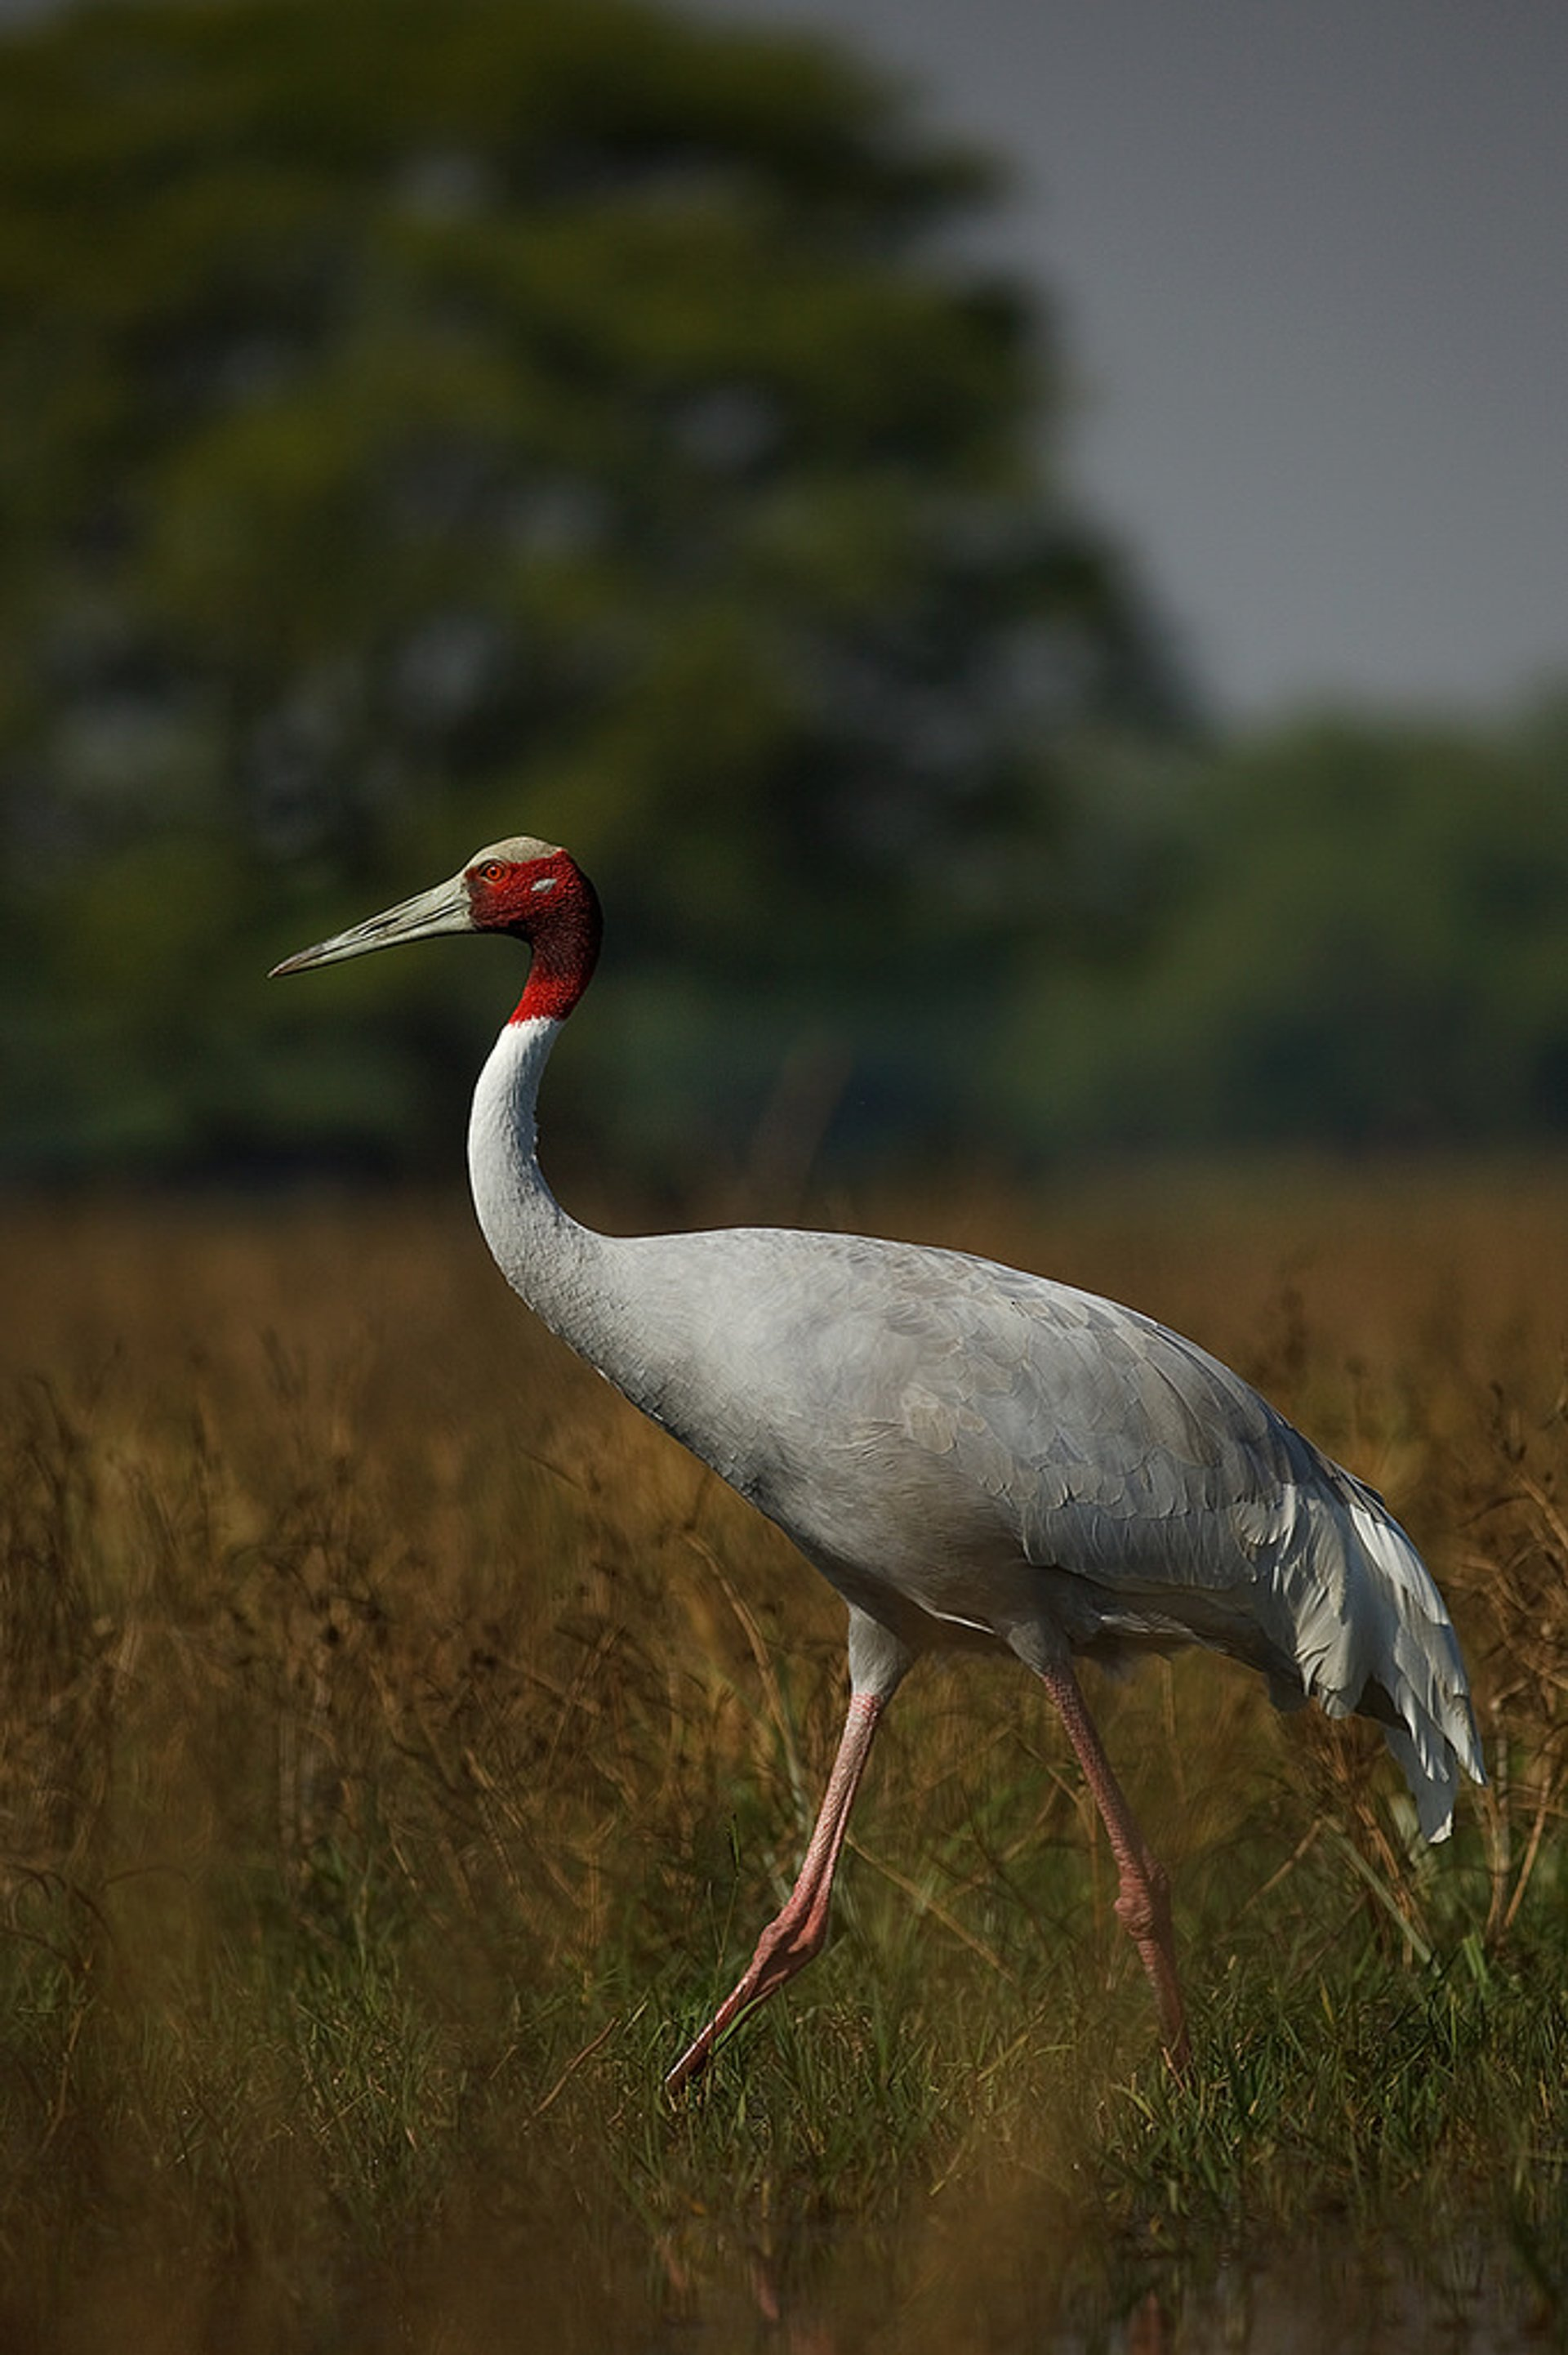 Red-Headed Cranes Watching in Vietnam - Best Season 2020